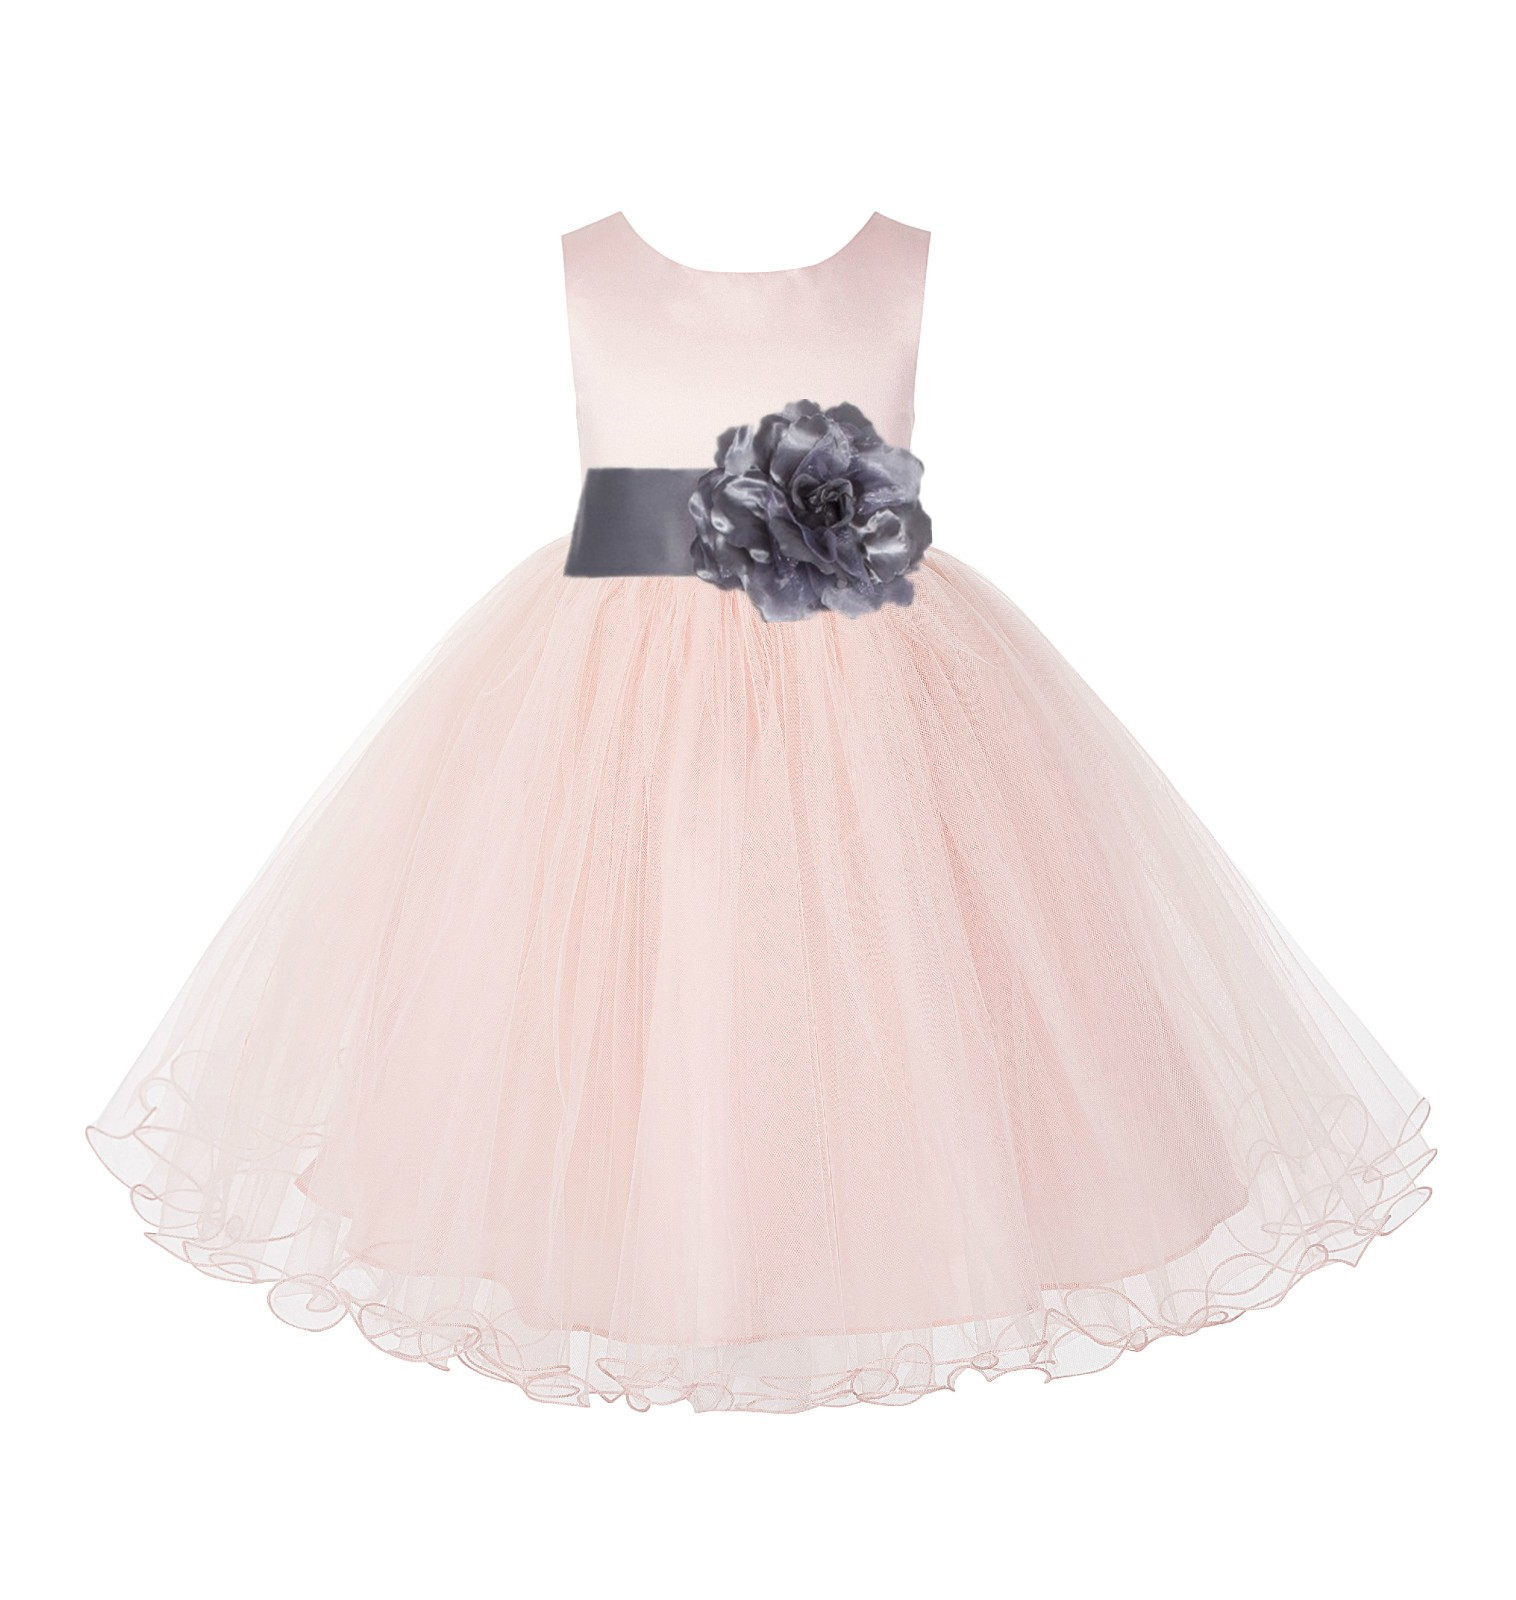 Blush Pink / Mercury Tulle Rattail Edge Flower Girl Dress Pageant Recital 829S